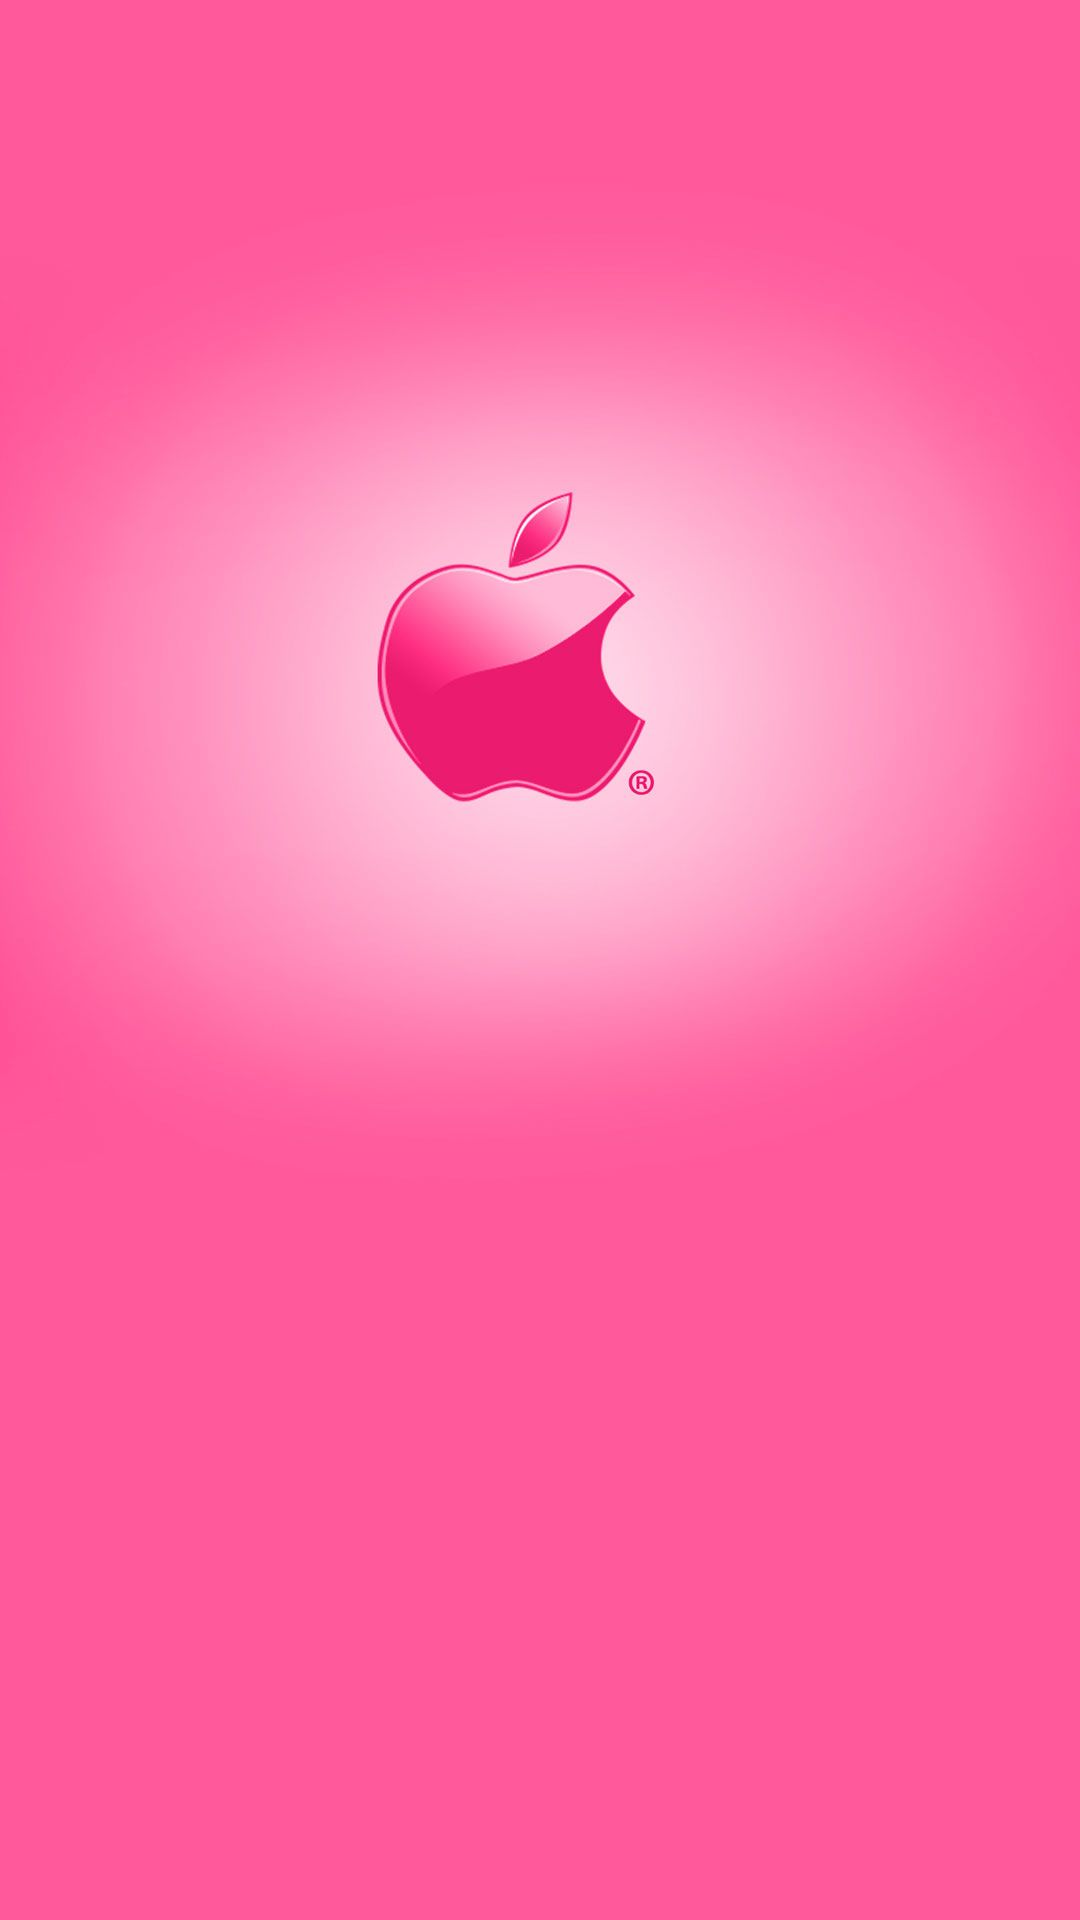 Cute pink Apple | Apples in Pink and Red! | Pinterest | Apples ...